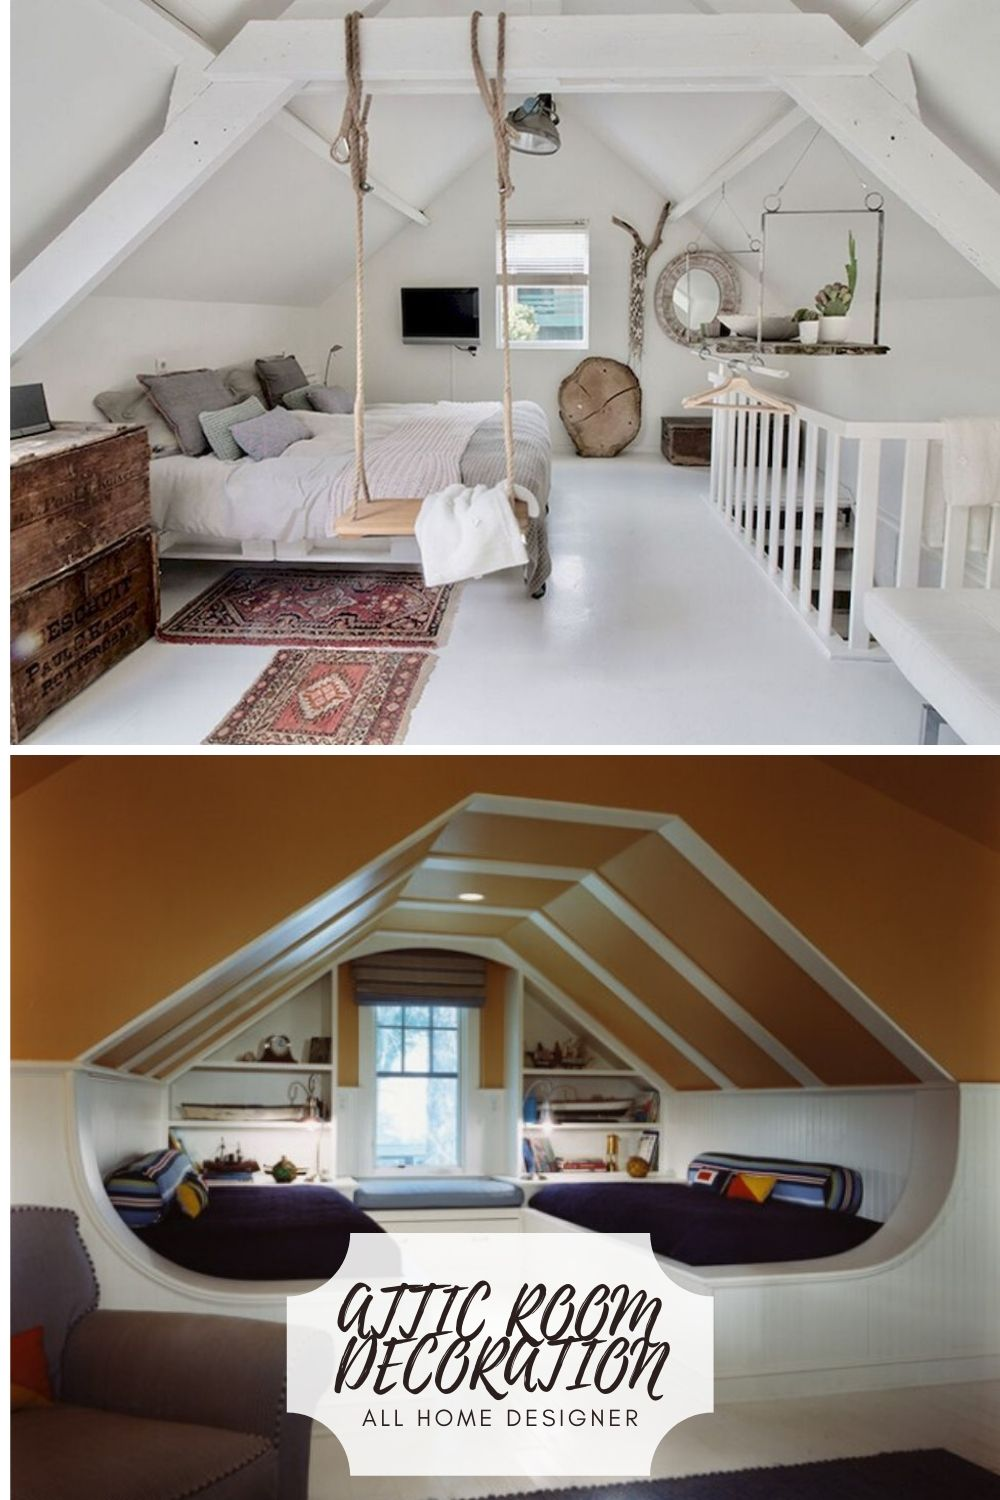 Rooms In Roof Designs: Design Ideas For Your Attic Room In 2020